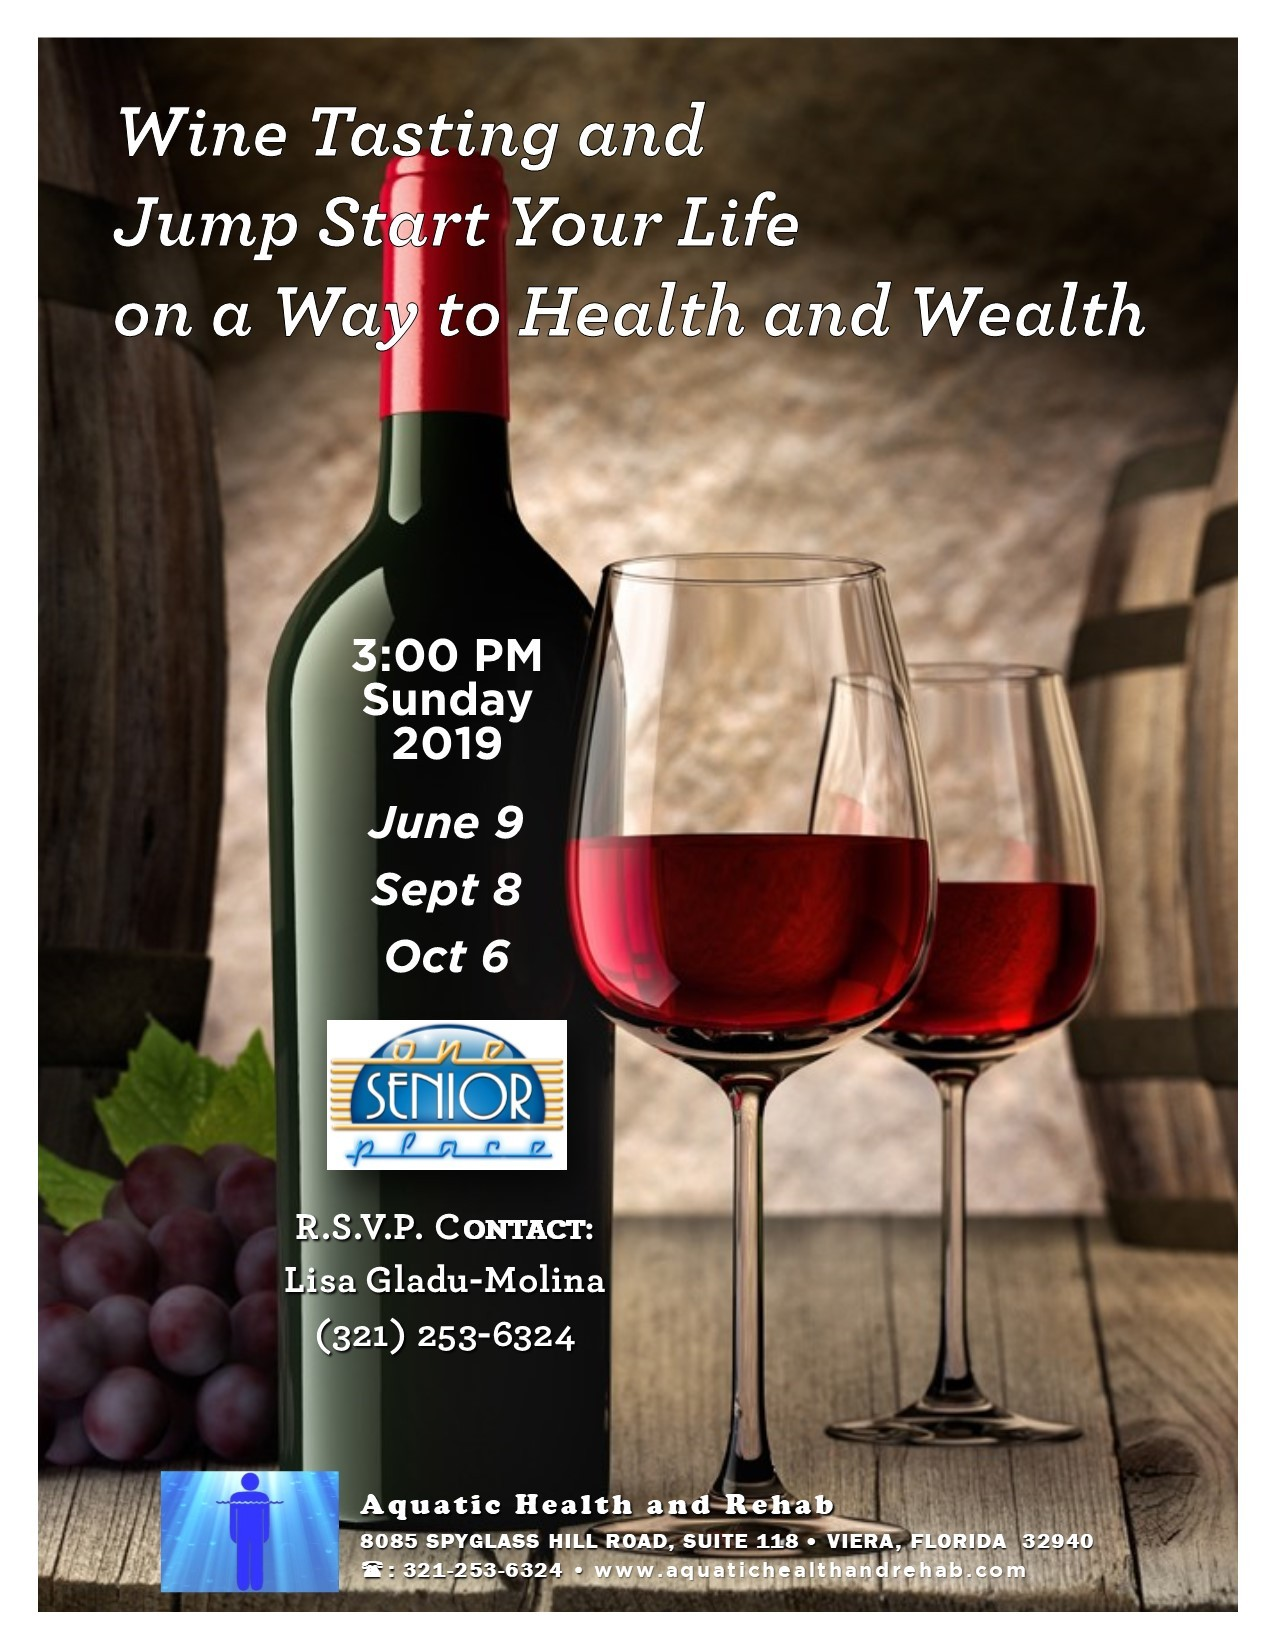 Wine and Wellness presented by Aquatic Health & Rehab